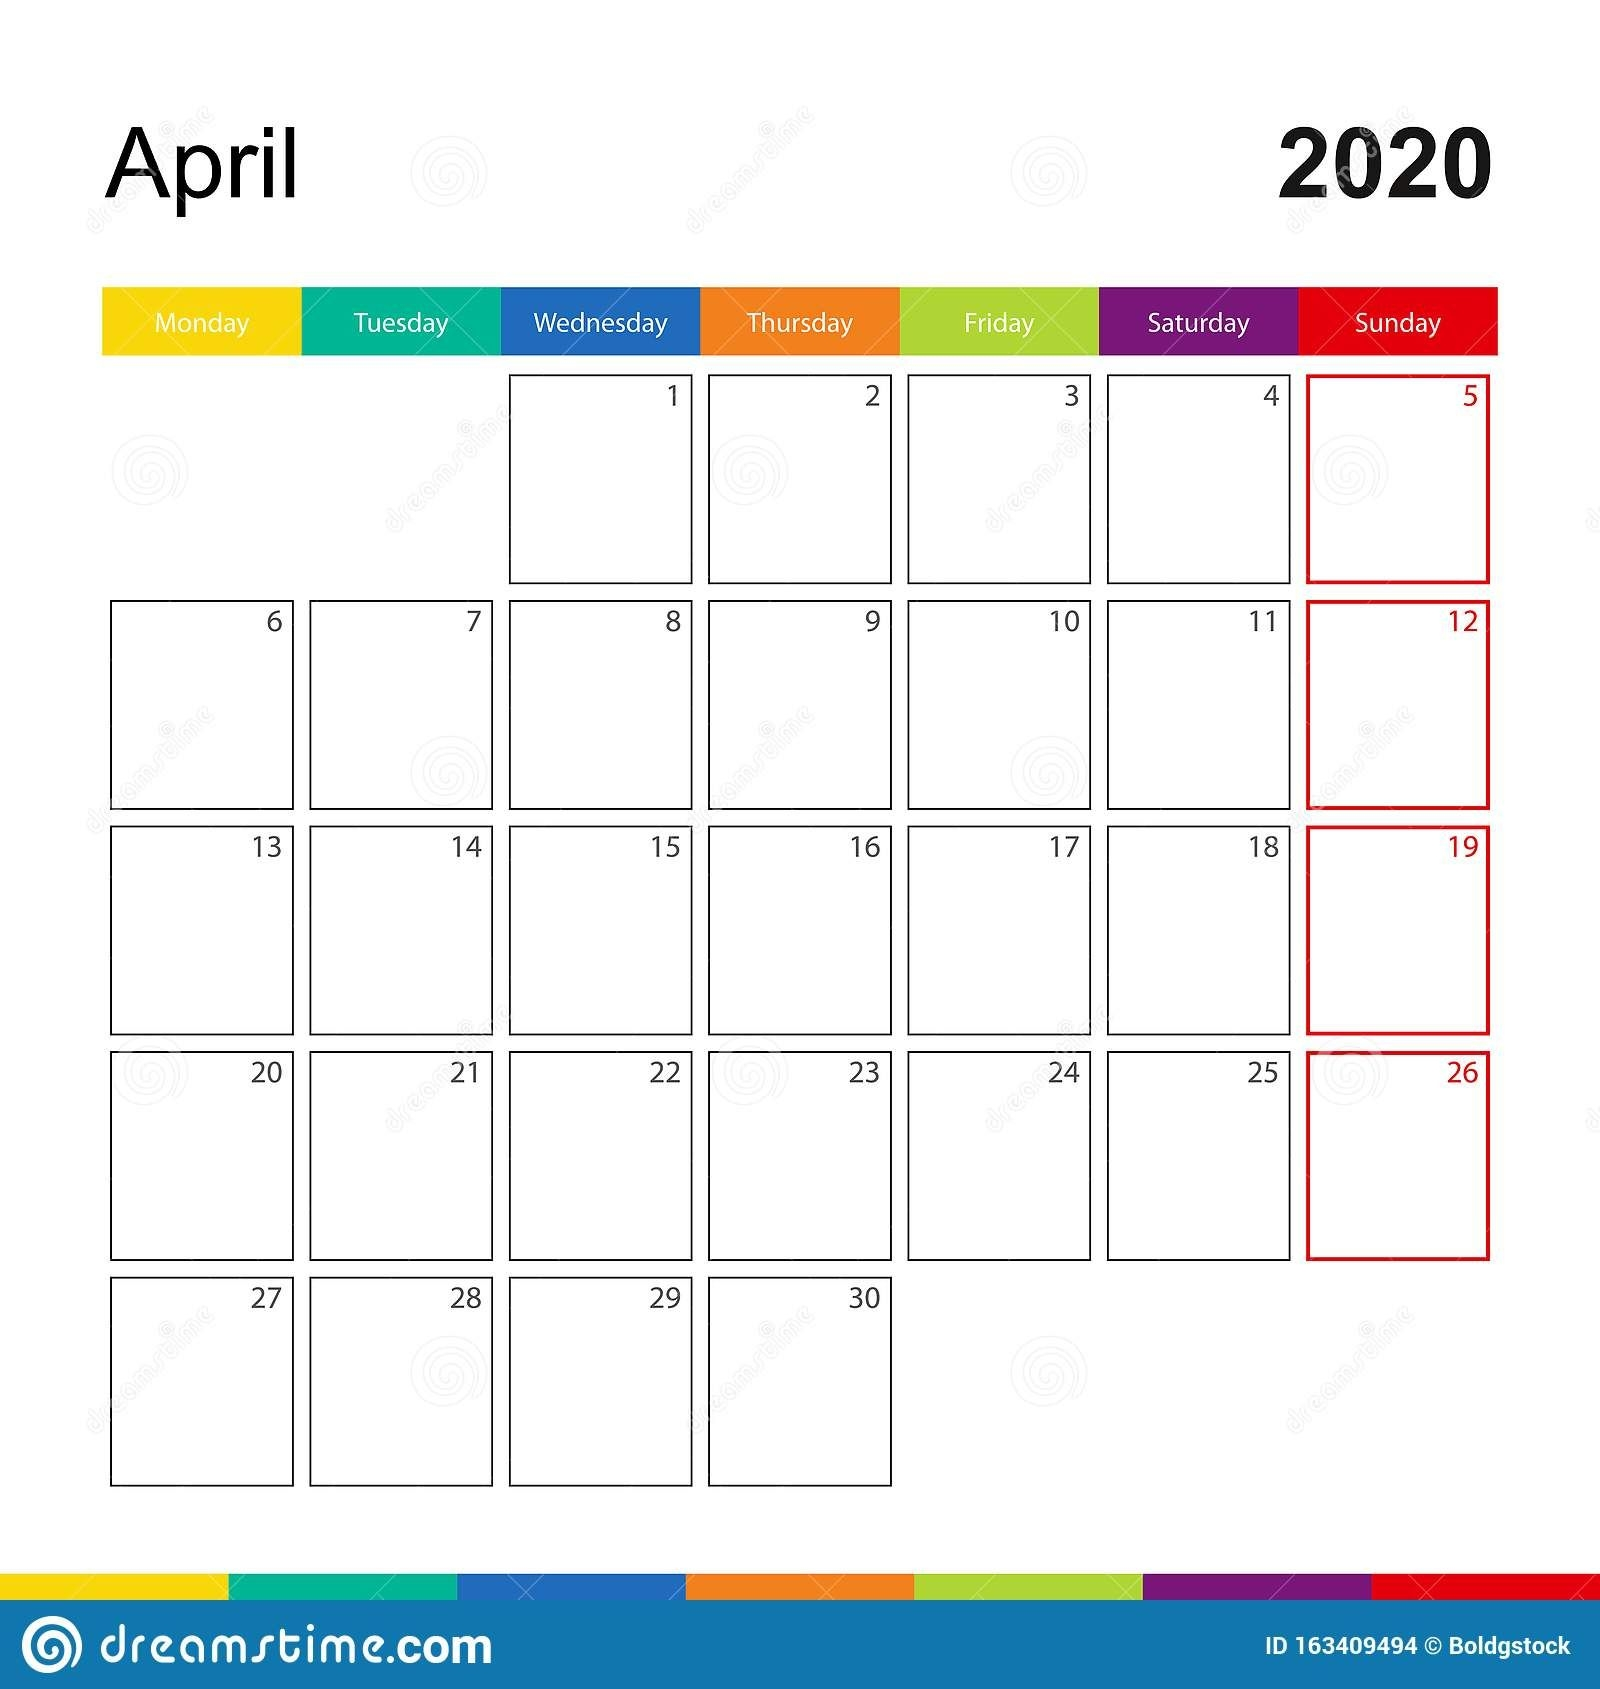 April 2020 Colorful Wall Calendar, Week Starts On Monday